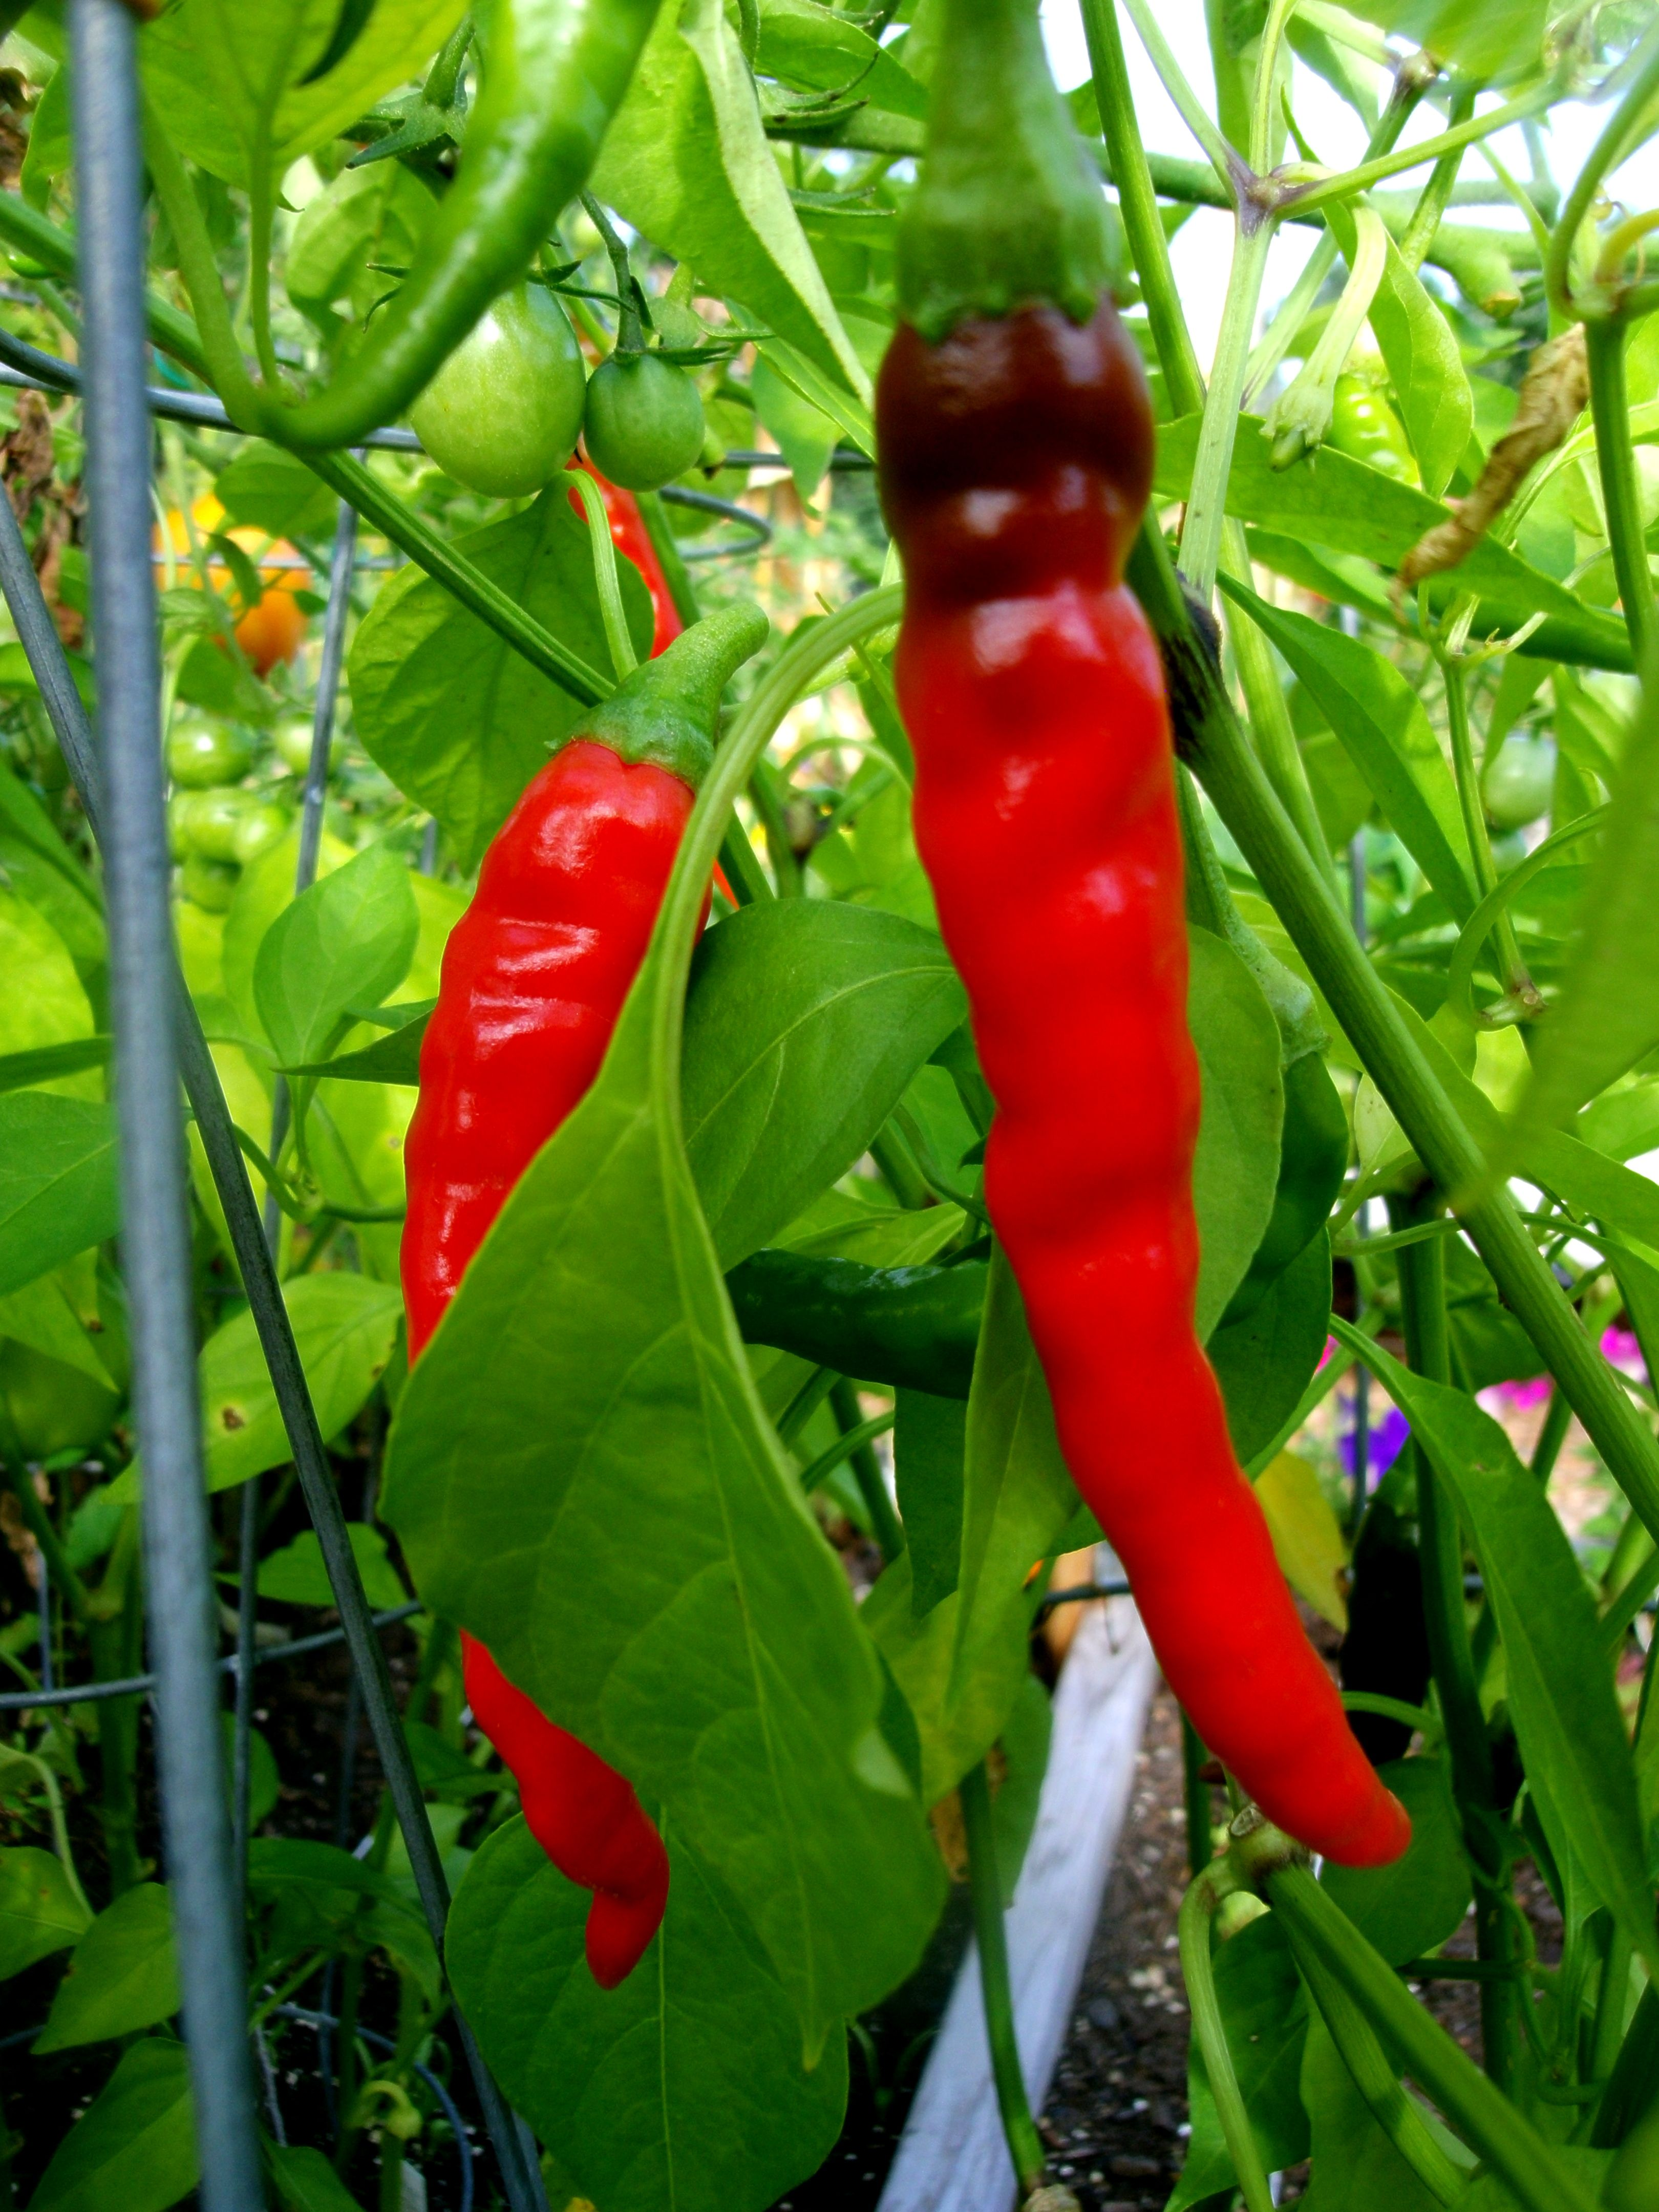 August 29th - Day 93 - Brilliant red cayenne peppers - these beauties continue to show up by the handfuls every few days!